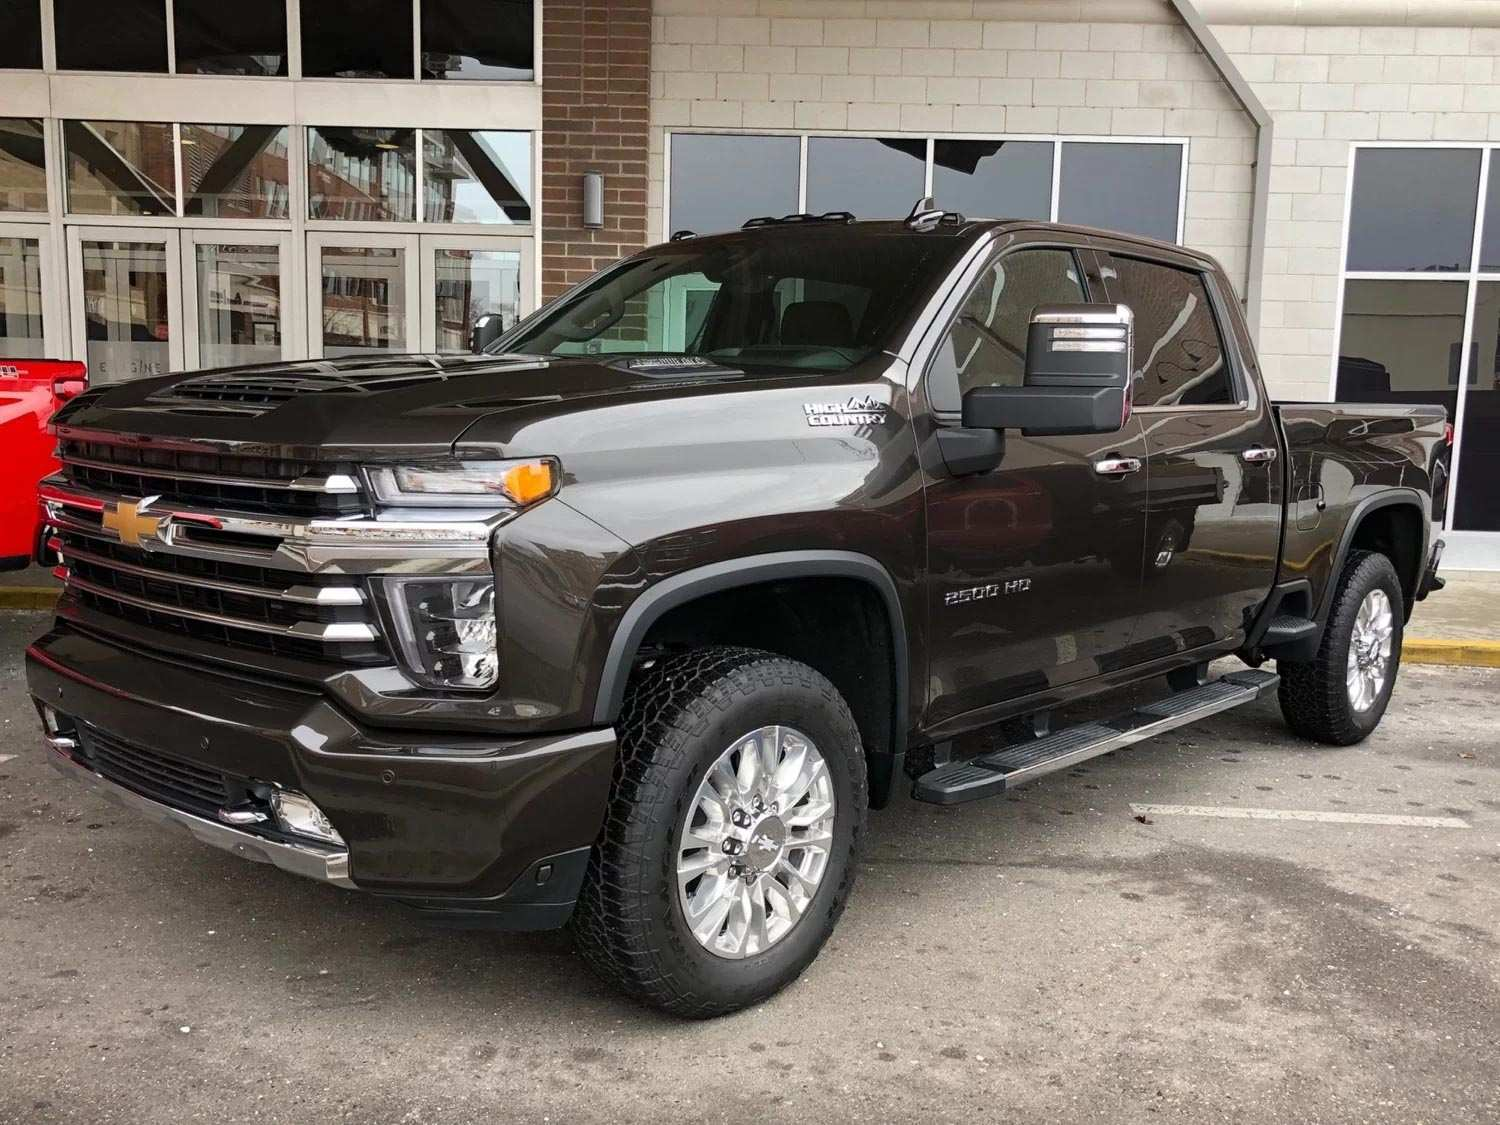 54 Great 2020 Chevrolet 2500 Ltz History with 2020 Chevrolet 2500 Ltz